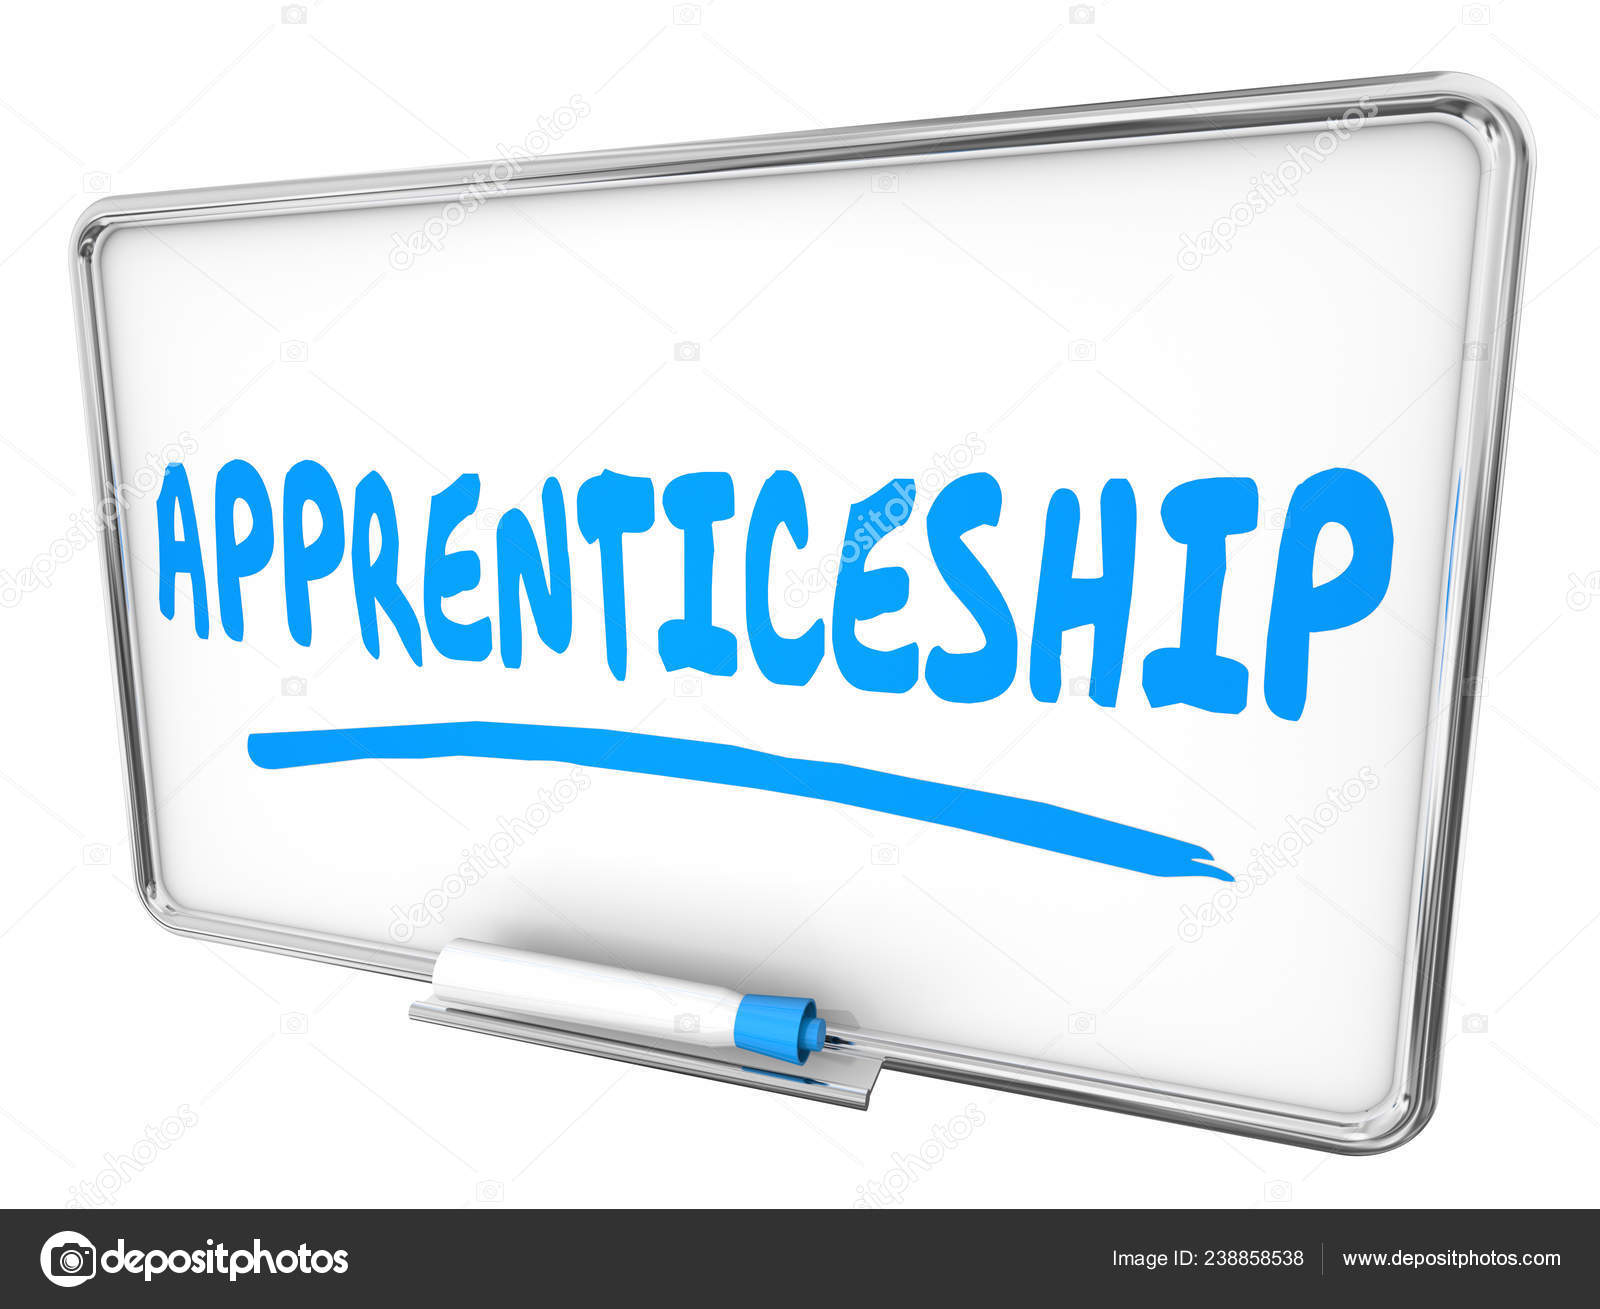 Apprenticeship Job Apprenticeship Job Learning Dry Erase Board Illustration Stock